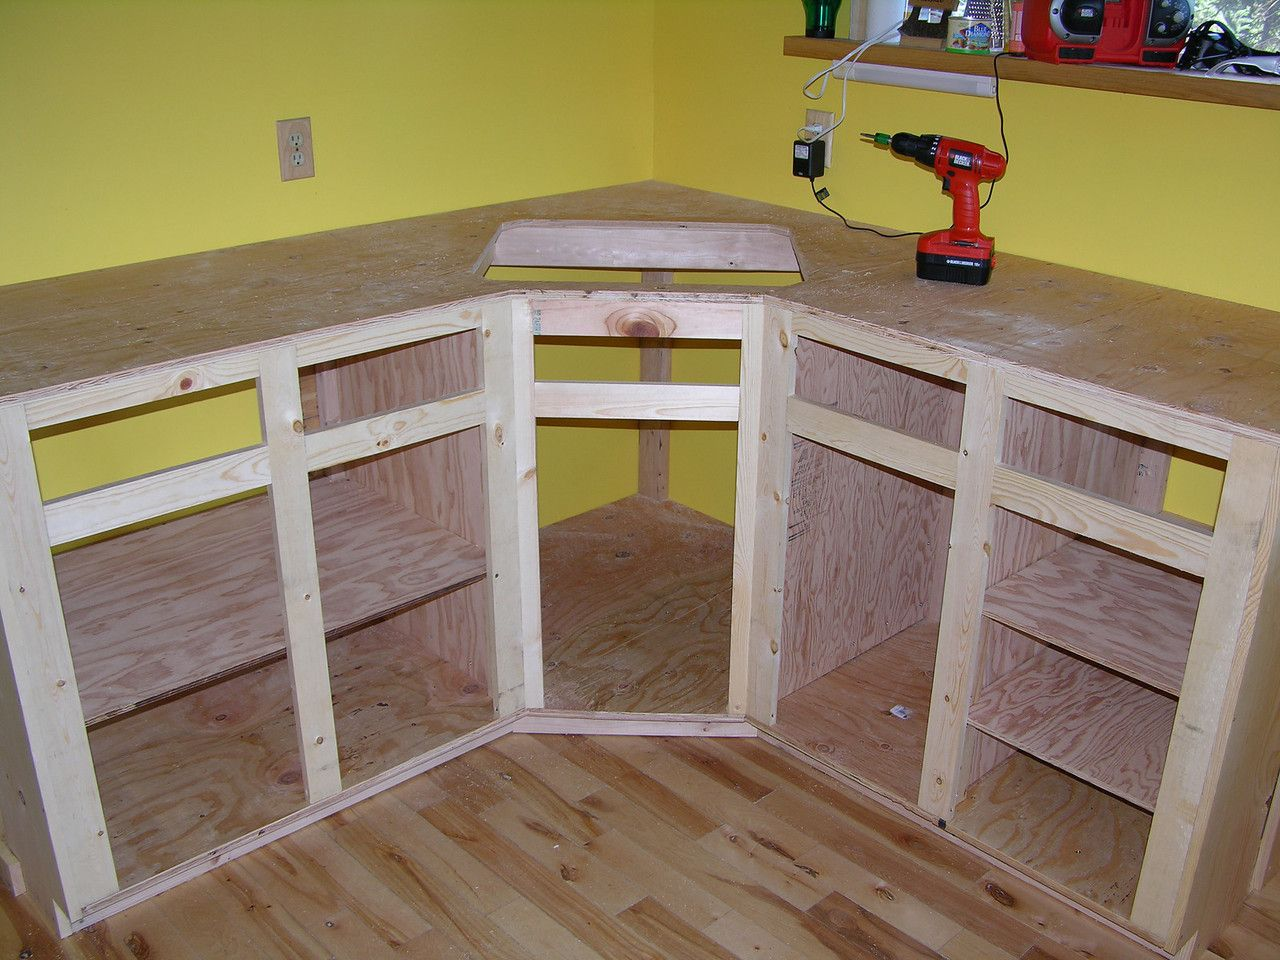 How to build kitchen cabinet frame remodeling house Pinterest